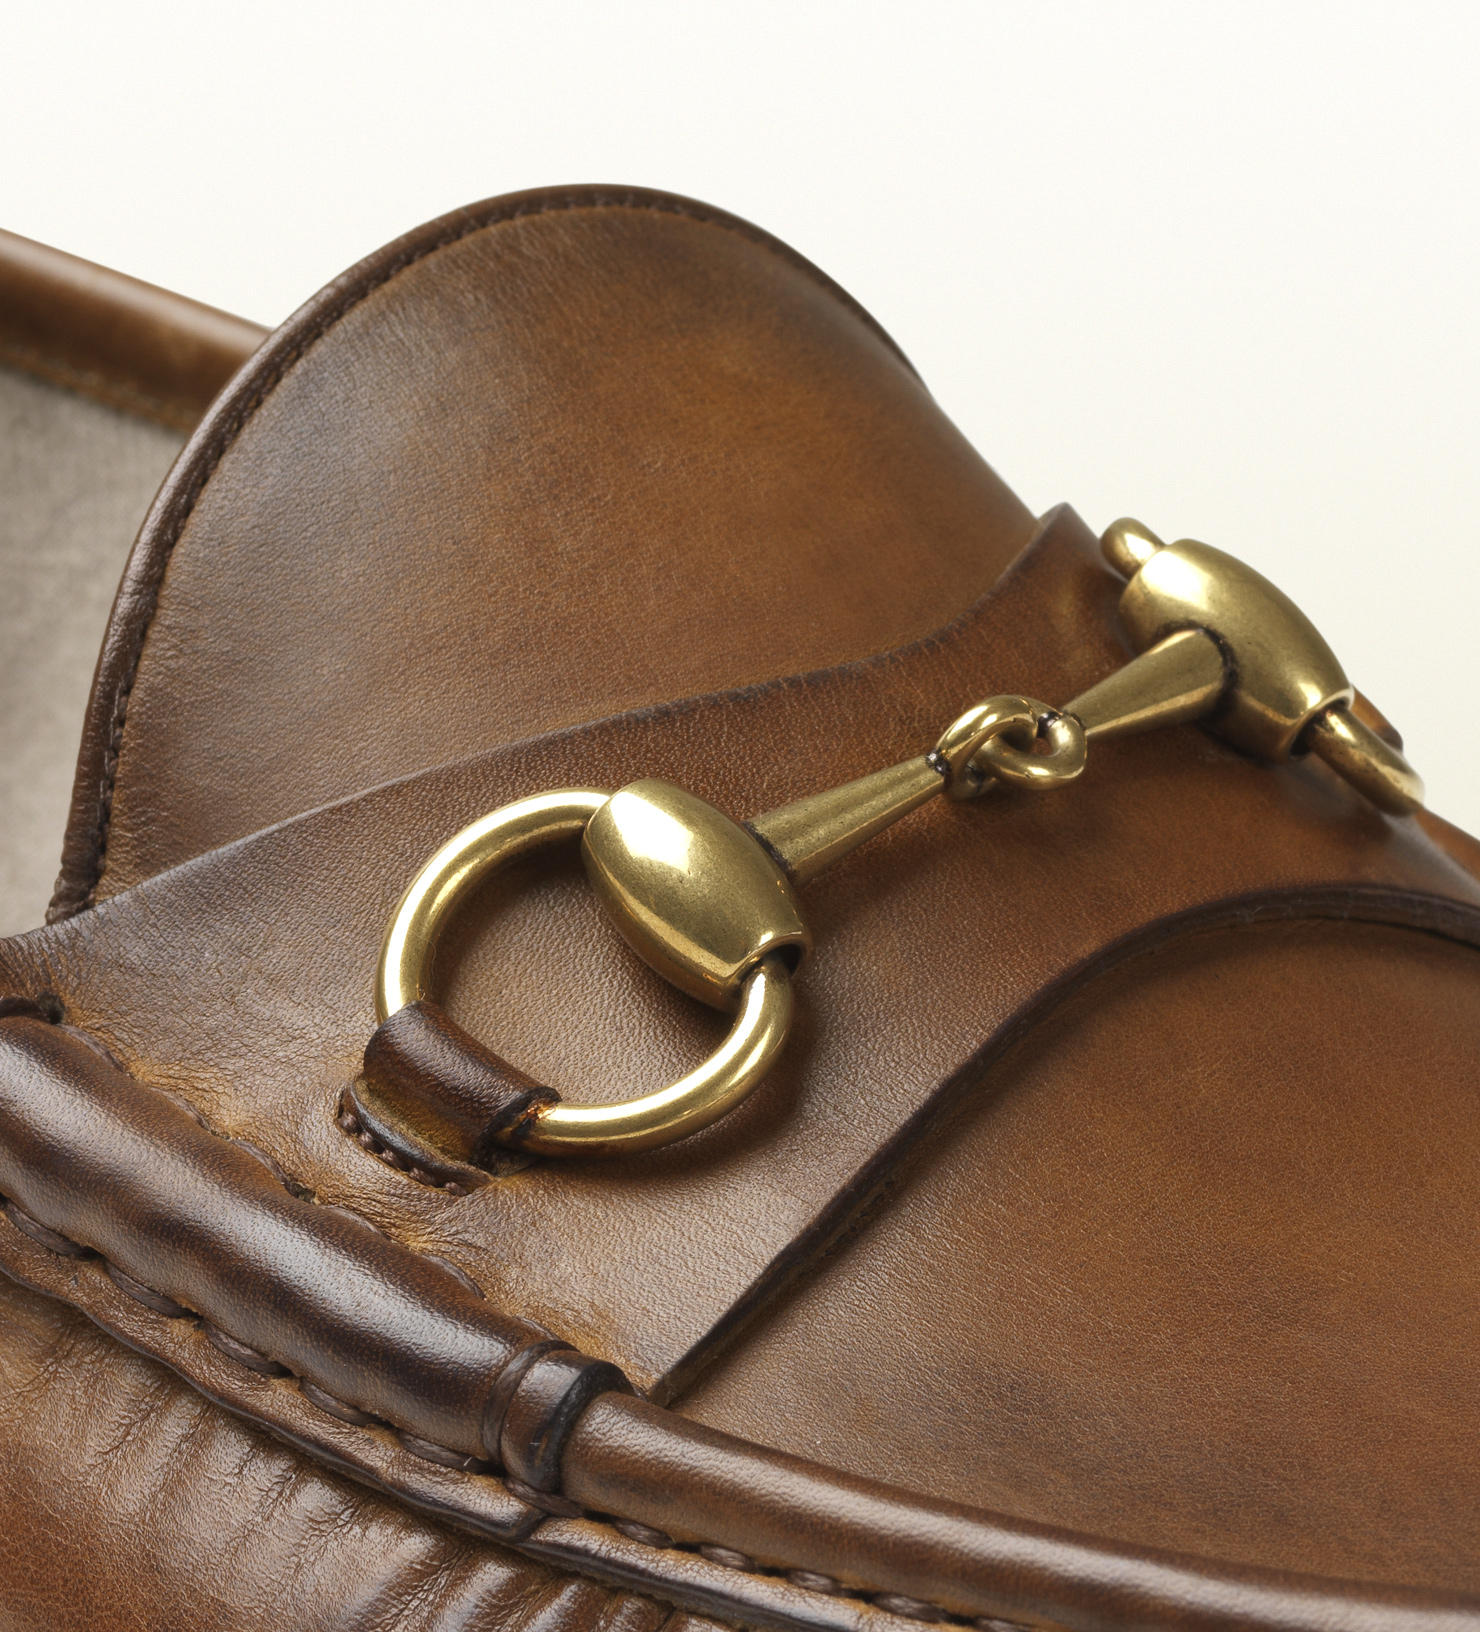 Gucci 1953 Horsebit Loafer In Leather in Brown for Men